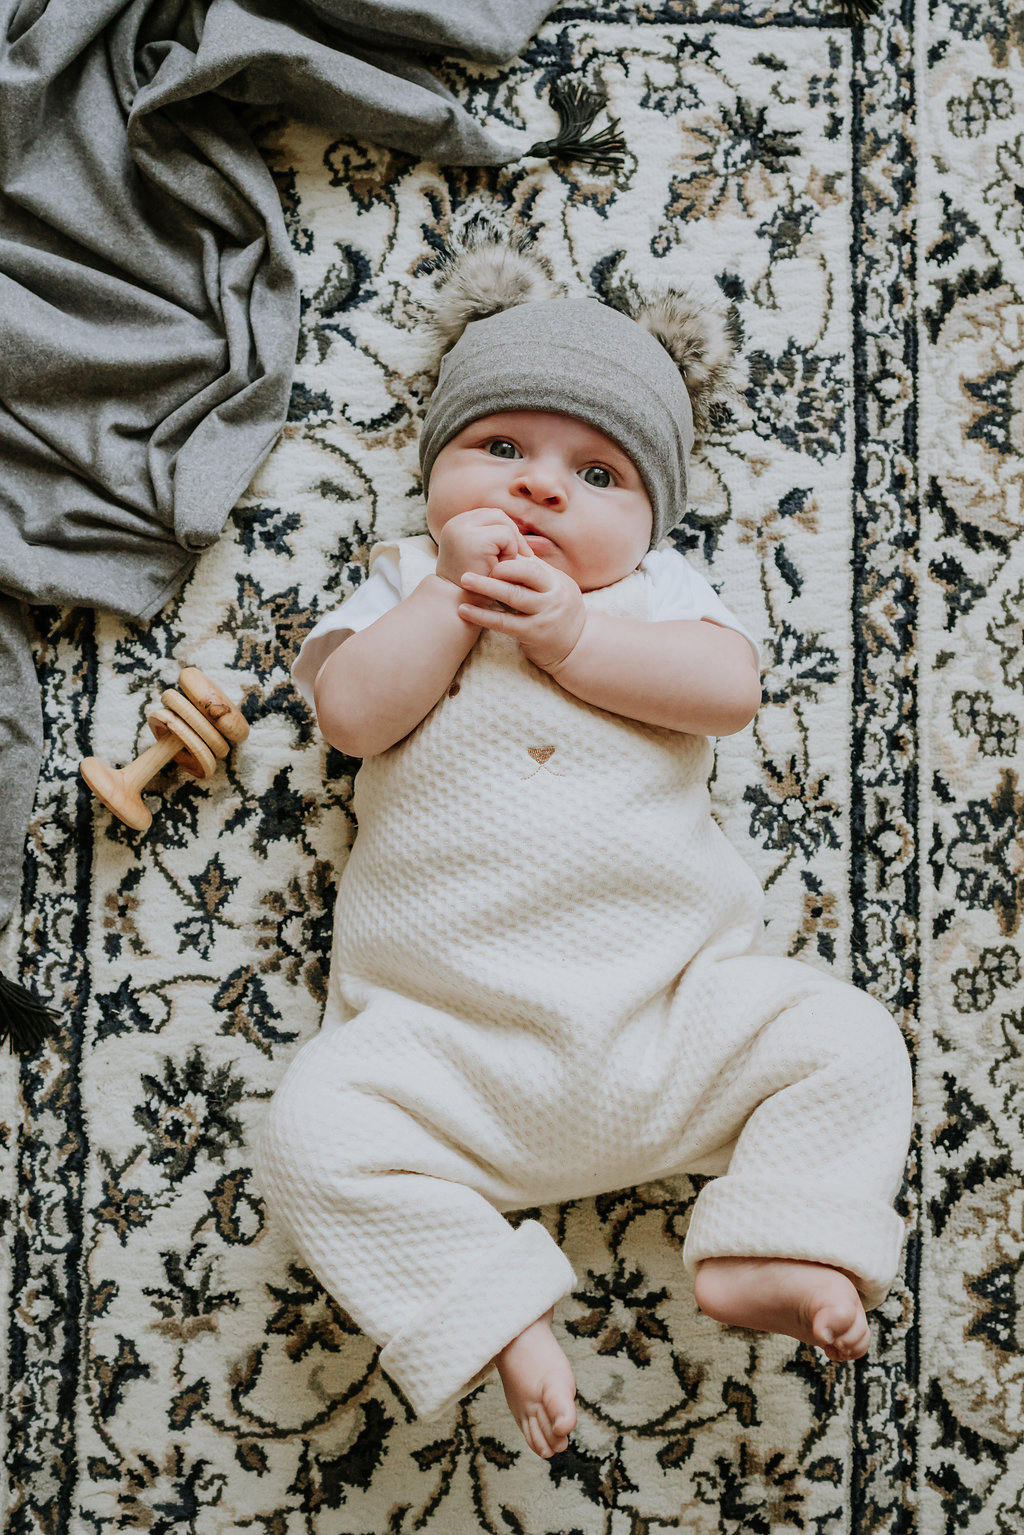 cute baby overall